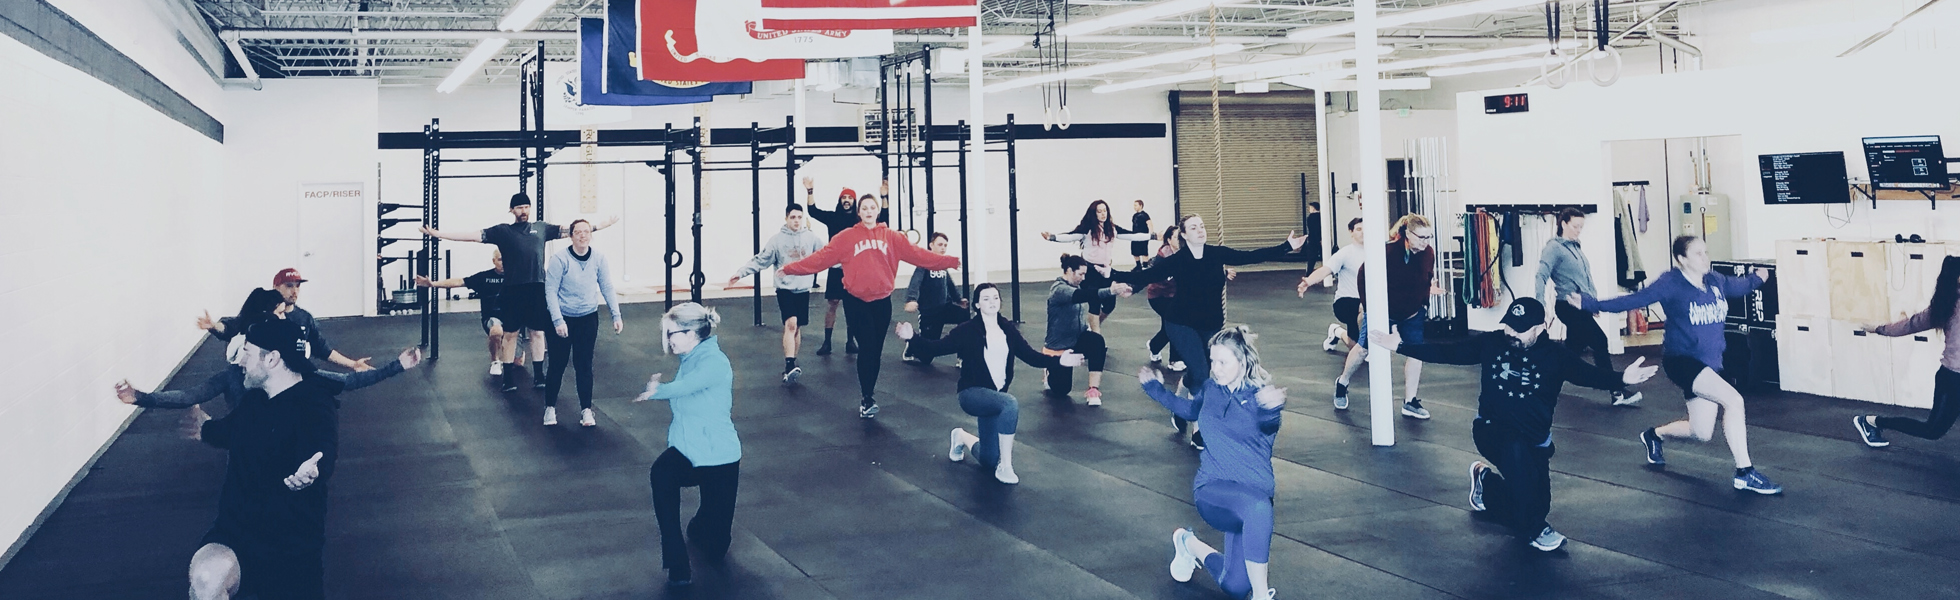 Why MVMNT Fitness Center Is Ranked One Of The Best Gyms In Boise ID